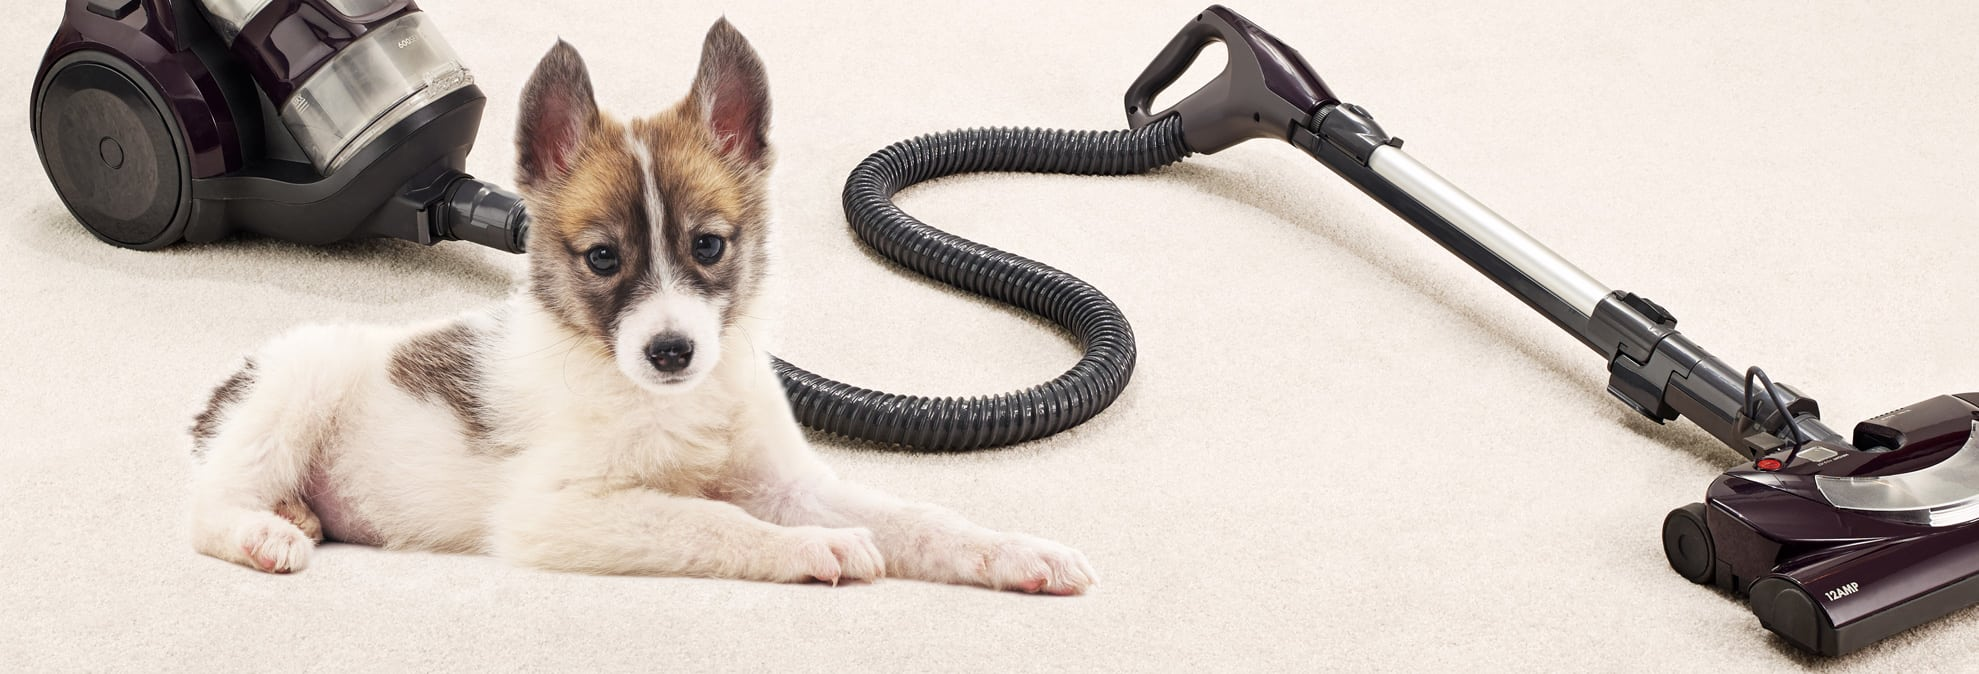 best vacuums for pet hair consumer reports. Black Bedroom Furniture Sets. Home Design Ideas